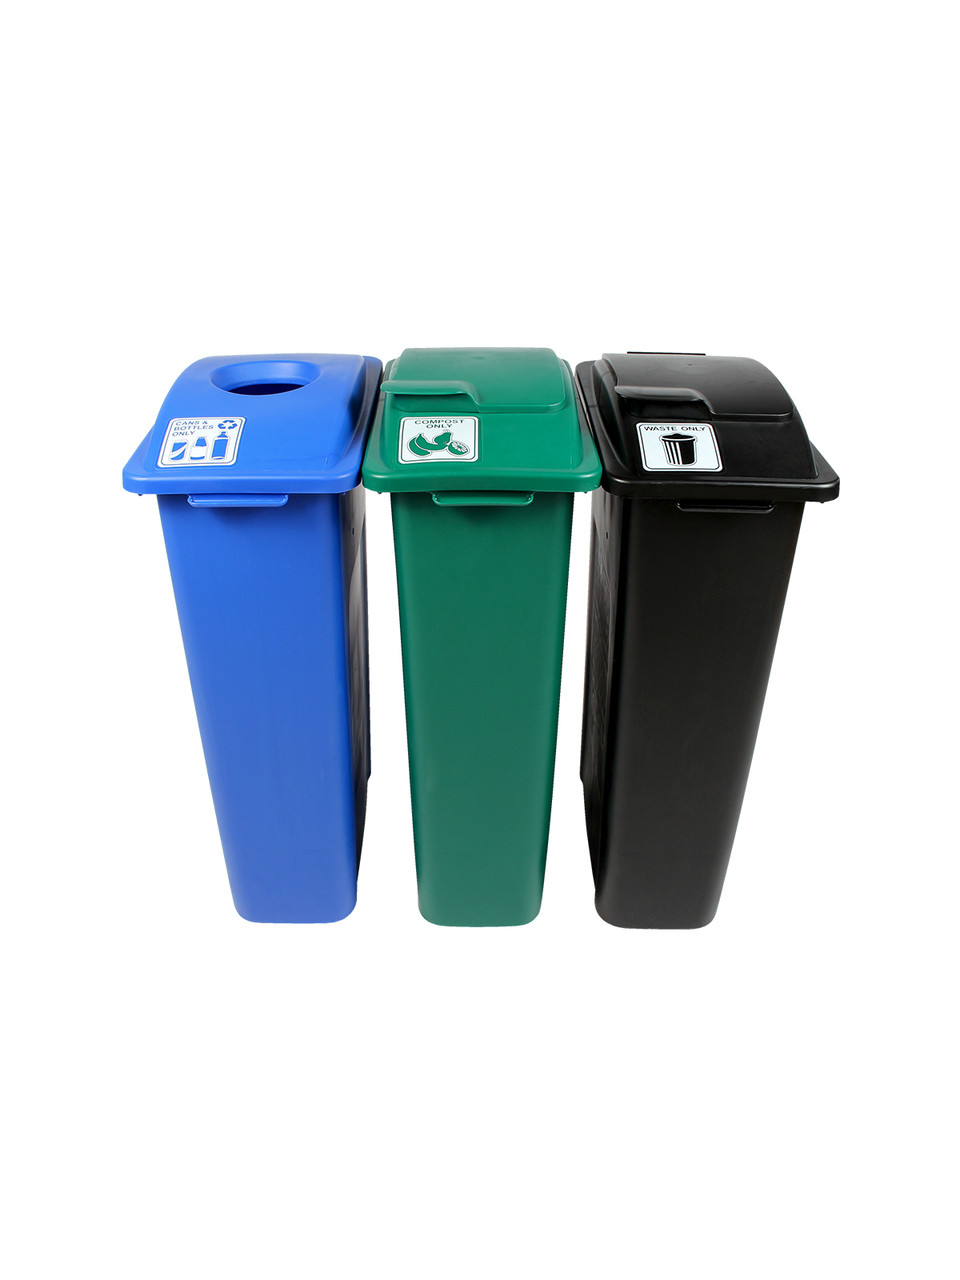 69 Gallon Simple Sort Skinny Recycle Bin Center 8106050-155 (Cans, Compost Lift Lid, Waste Lift Lid)